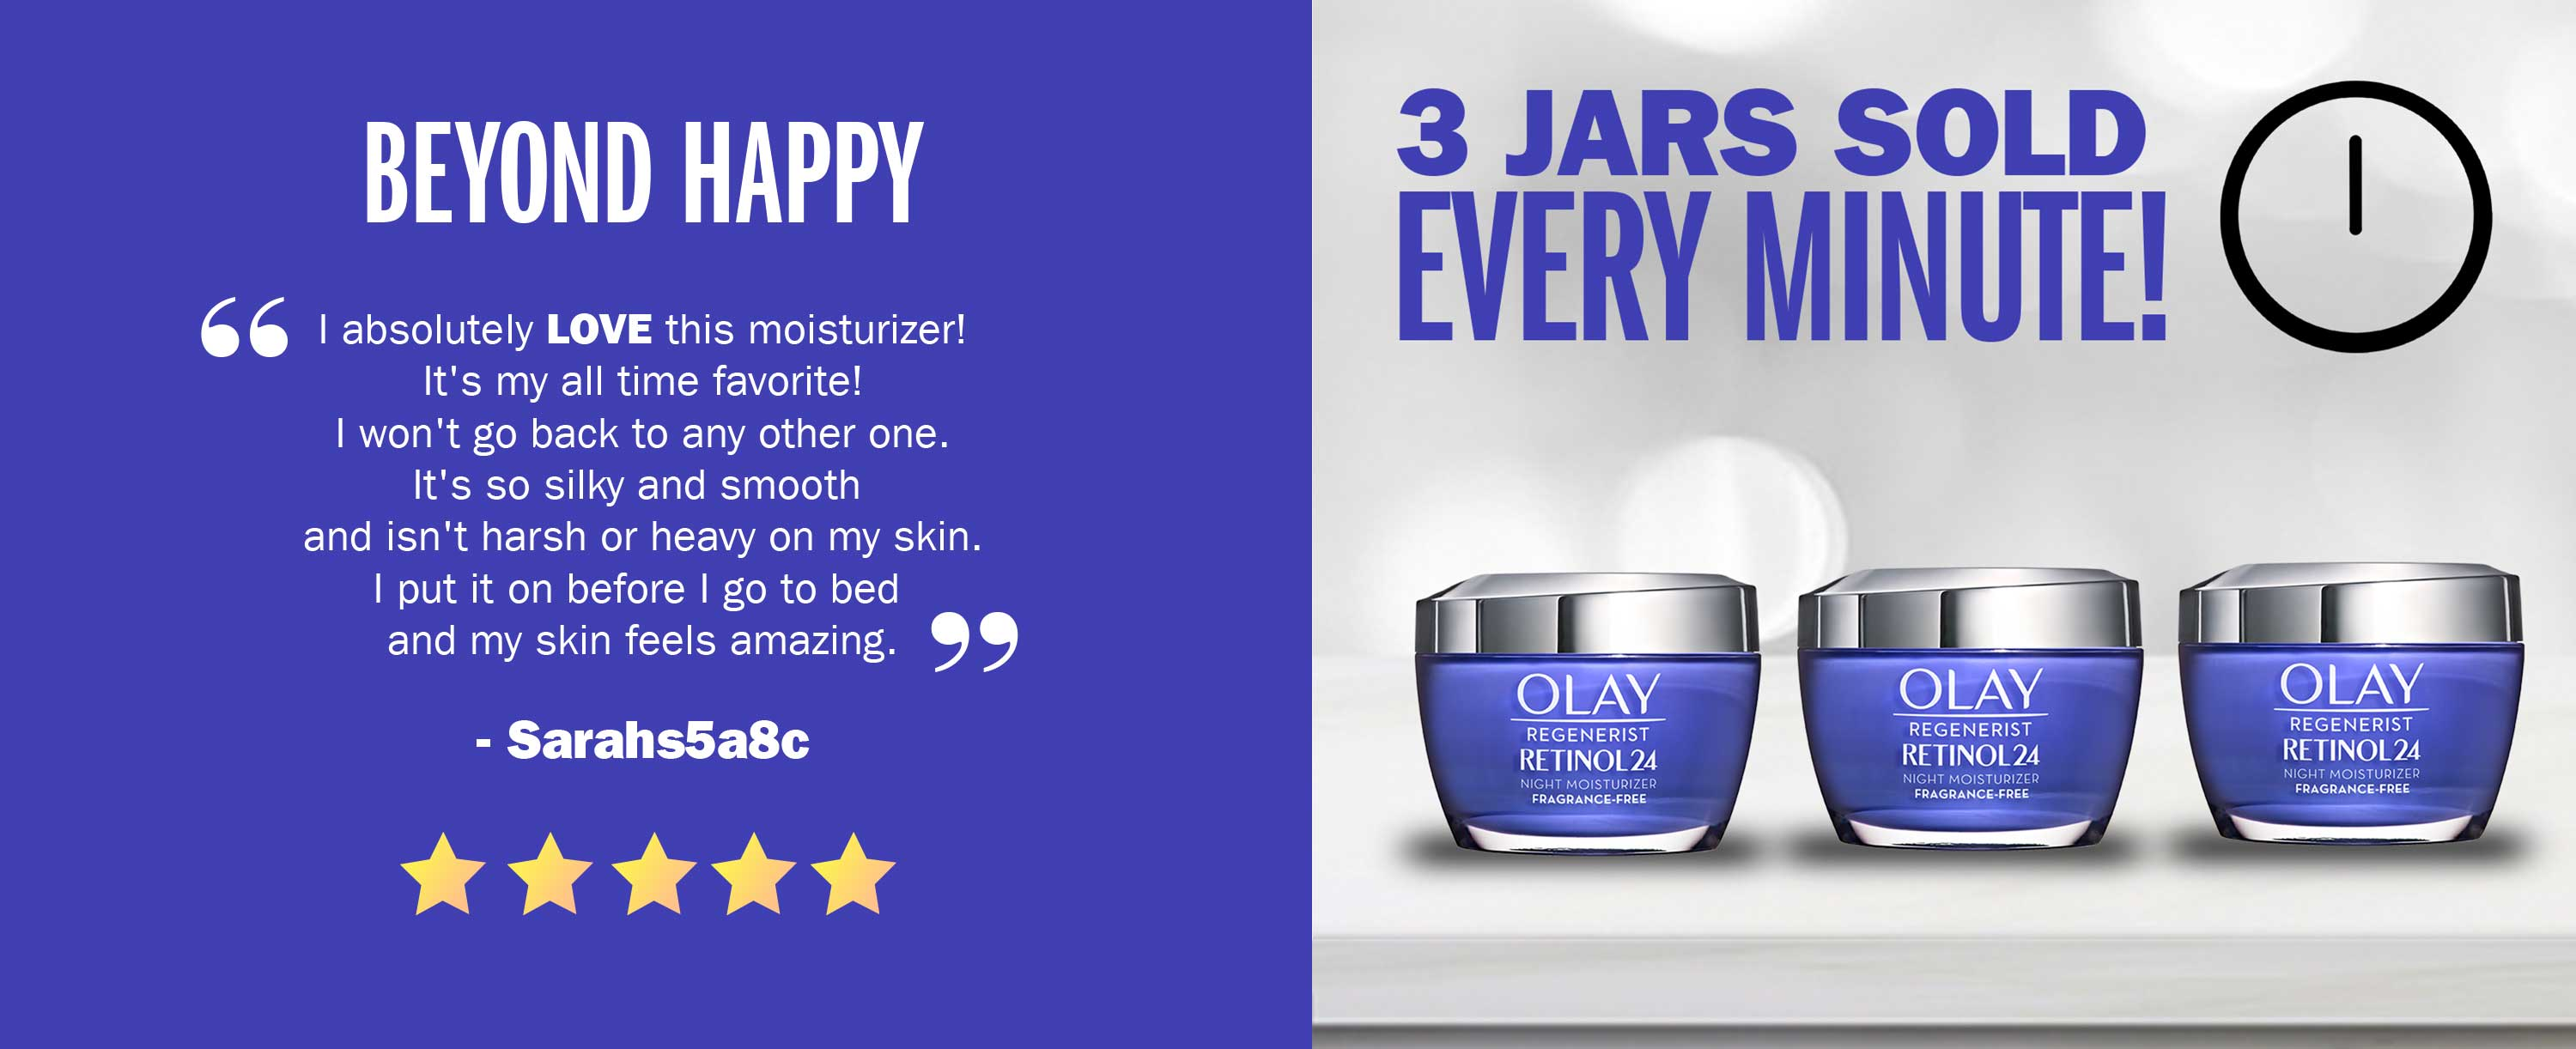 """3 jars sold every minute! Our Olay Regenerist Retinol24 MAX is getting rave 5-star reviews - """"I absolutely LOVE this moisturizer! It's my all time favorite! I won't go back to any other one. It's so silky and smooth and isn't harsh or heavy on my skin. I put it on before I go to bed and my skin feels amazing"""